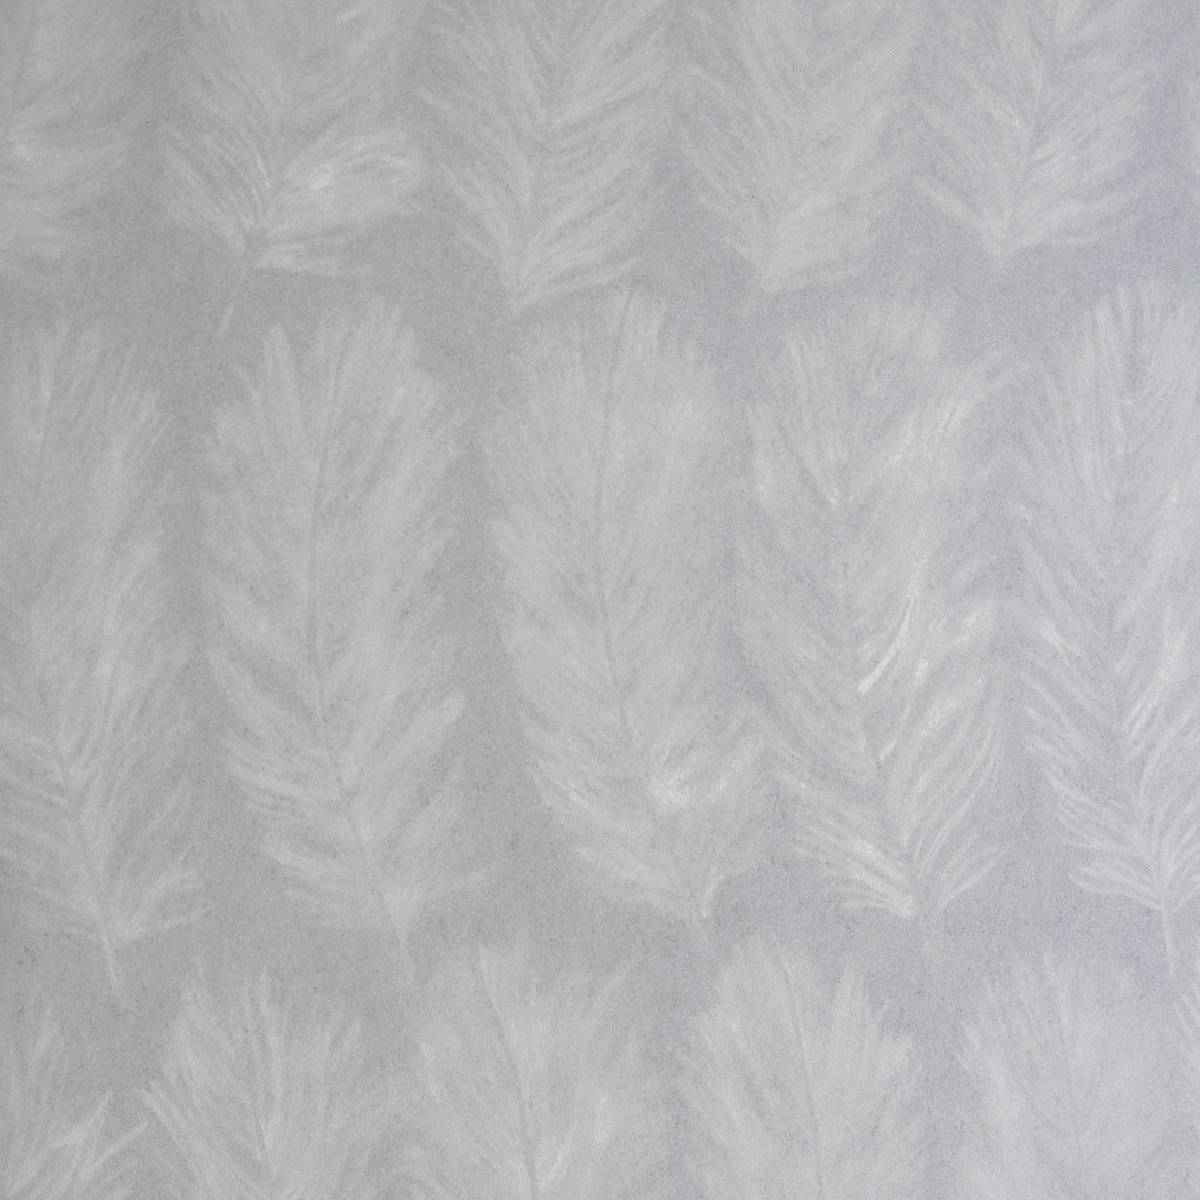 Casadeco Innocence Fabrics & Wallpapers Plume Wallpaper - Gris - 27569123. Loading zoom